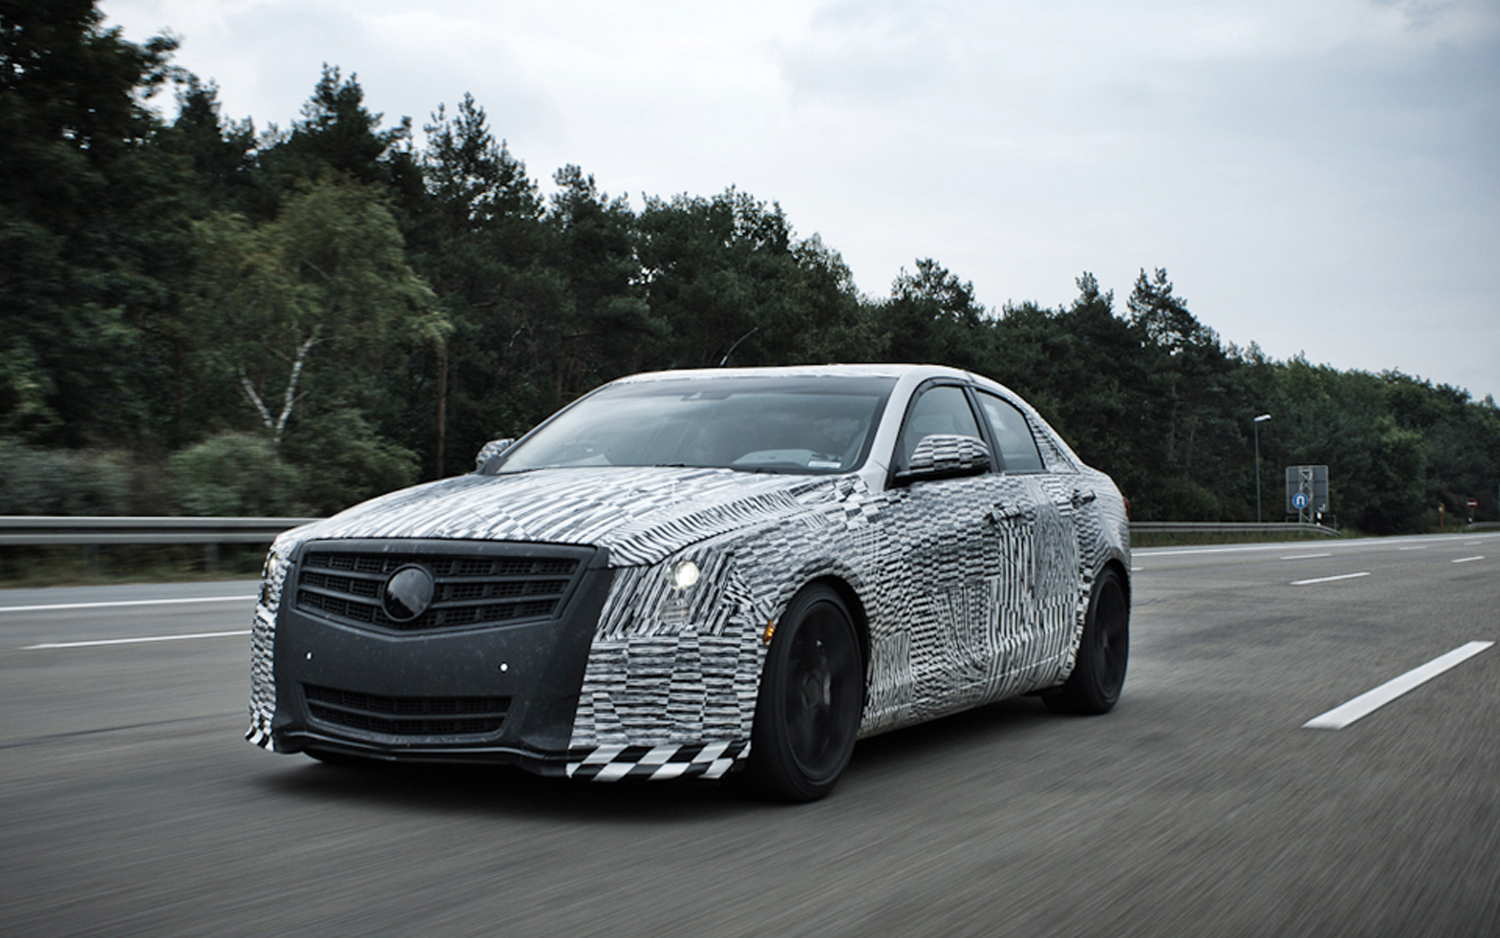 2013 Cadillac Ats 2 0 L Turbo >> 2013 Cadillac Ats To Feature New 270 Hp 2 0 Liter Turbo Four